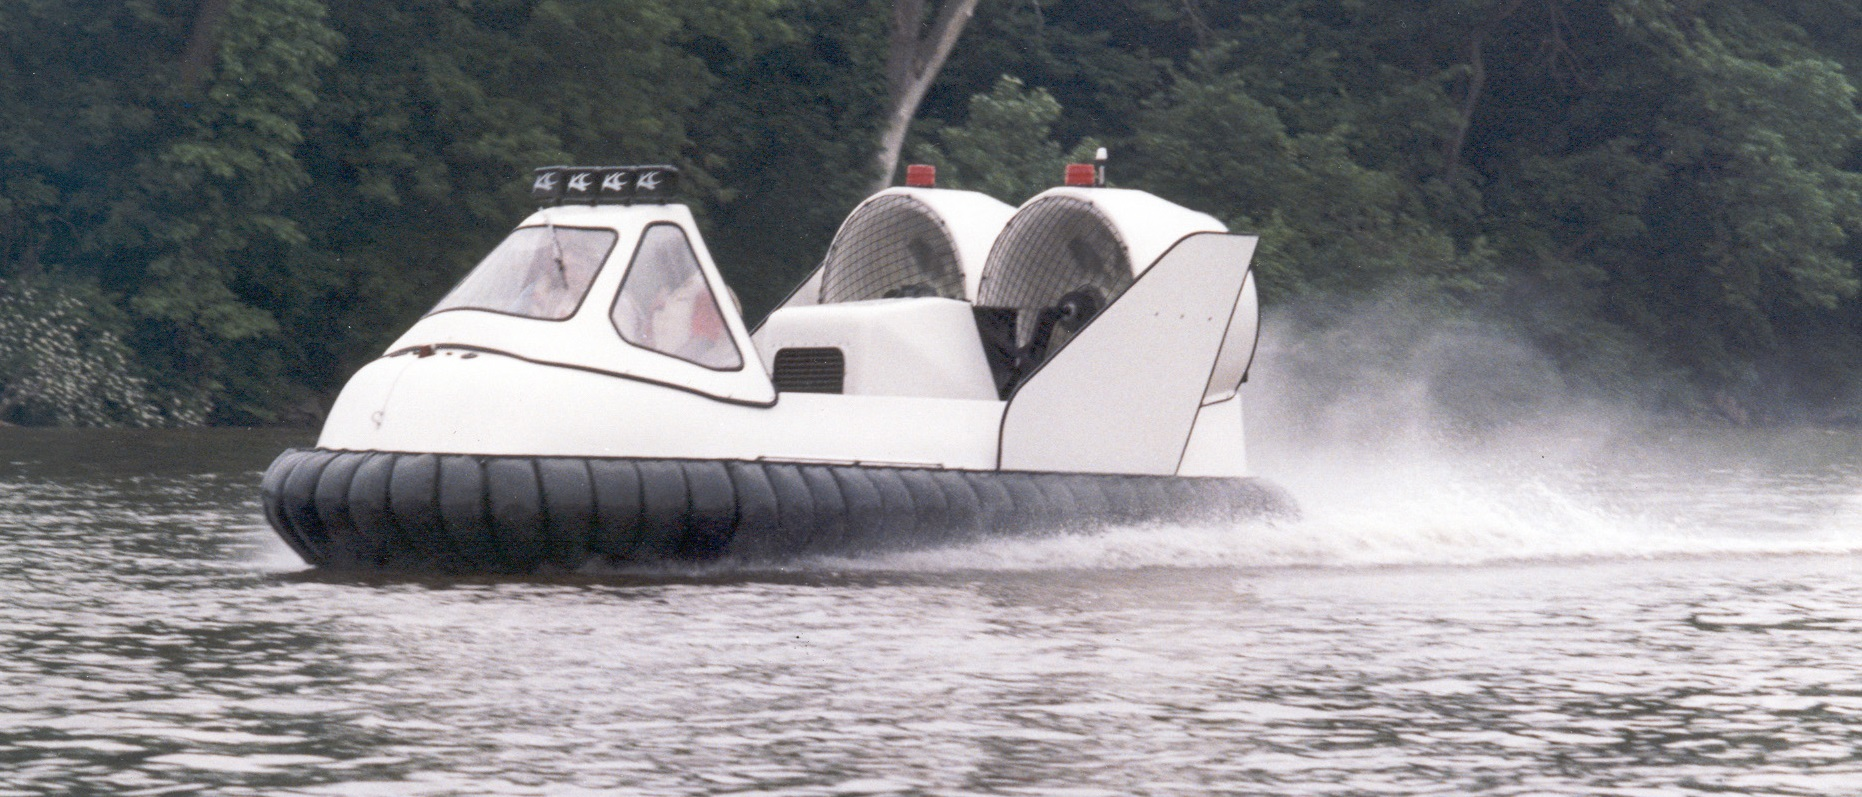 Hovertechincs Hoverguard 800 hovercraft